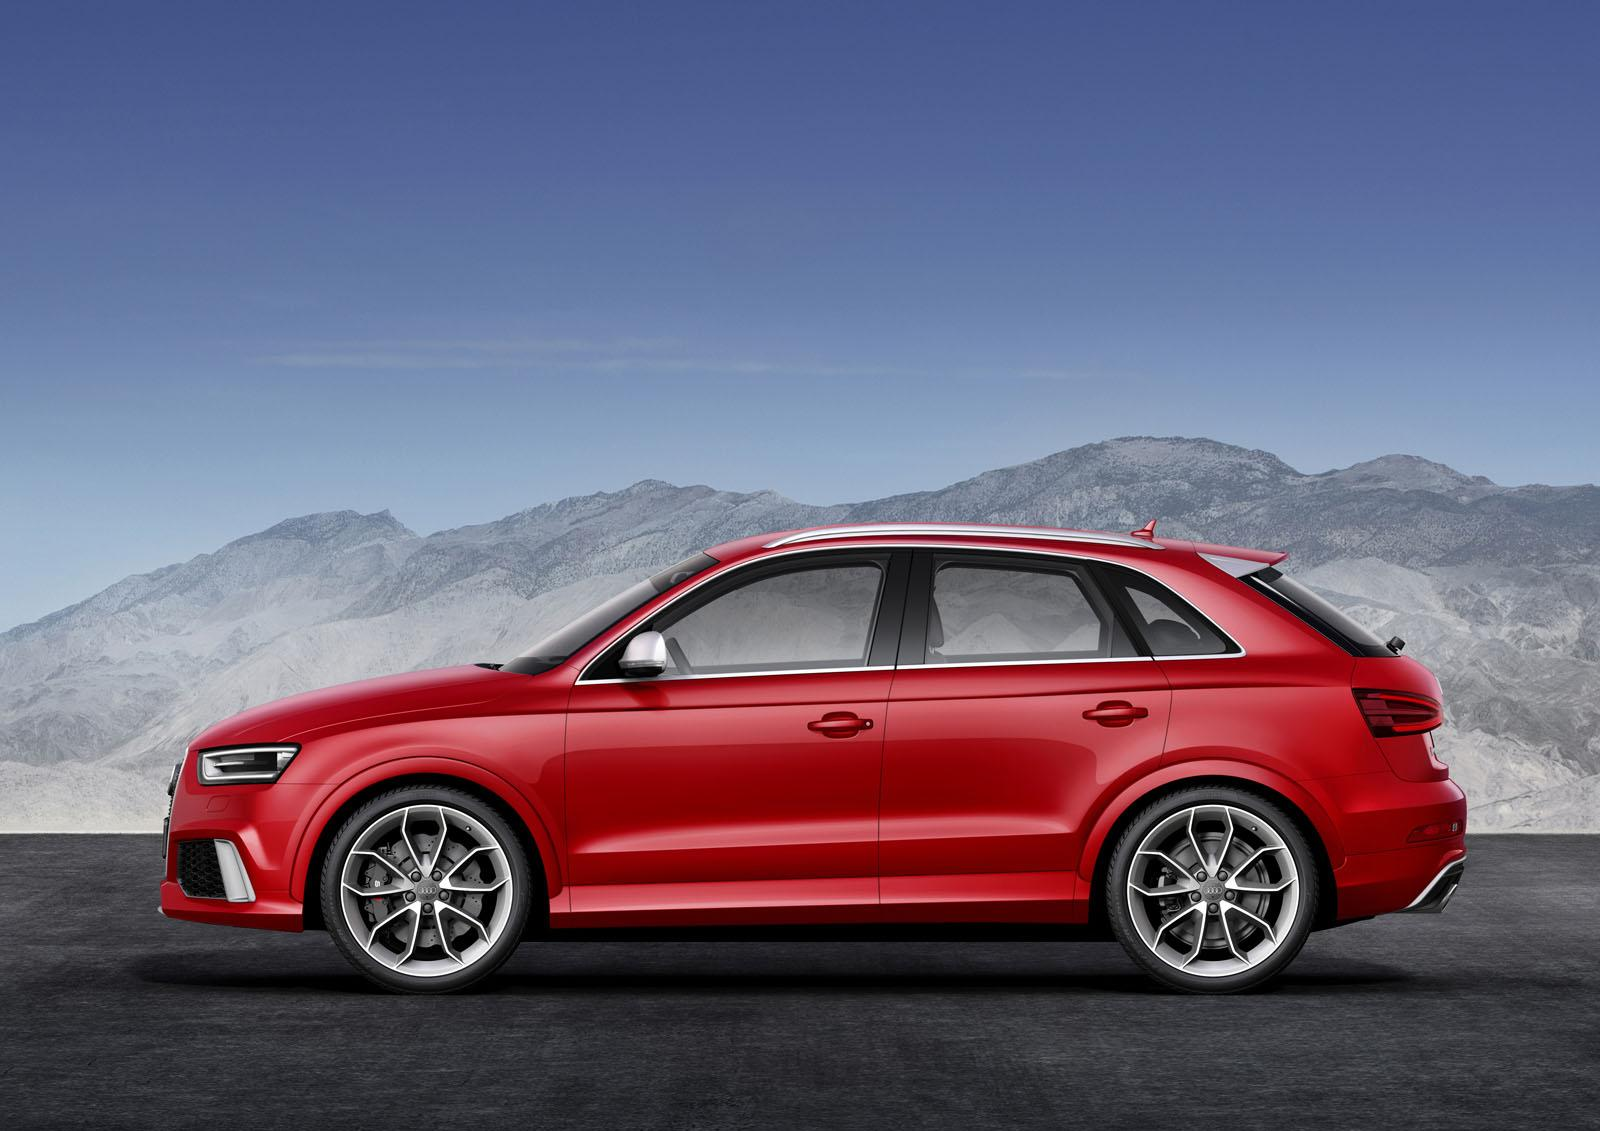 2014 Audi RS Q3 Officially Revealed - autoevolution